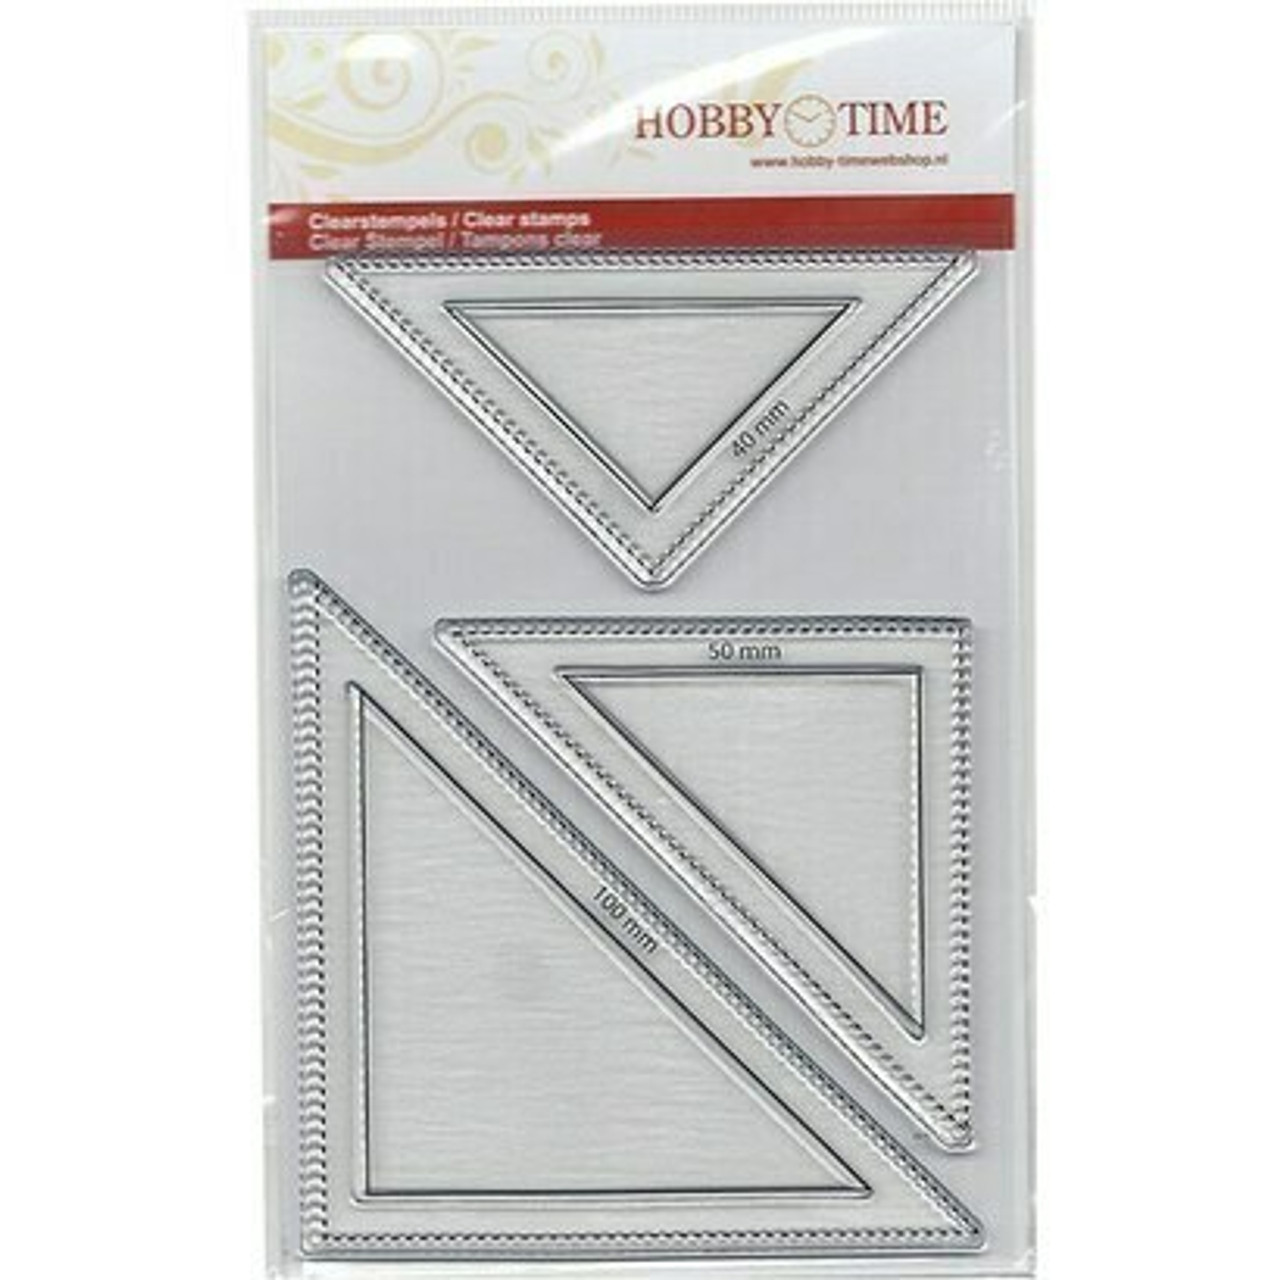 Hobby Time 3 Size Half Square Stamp Set